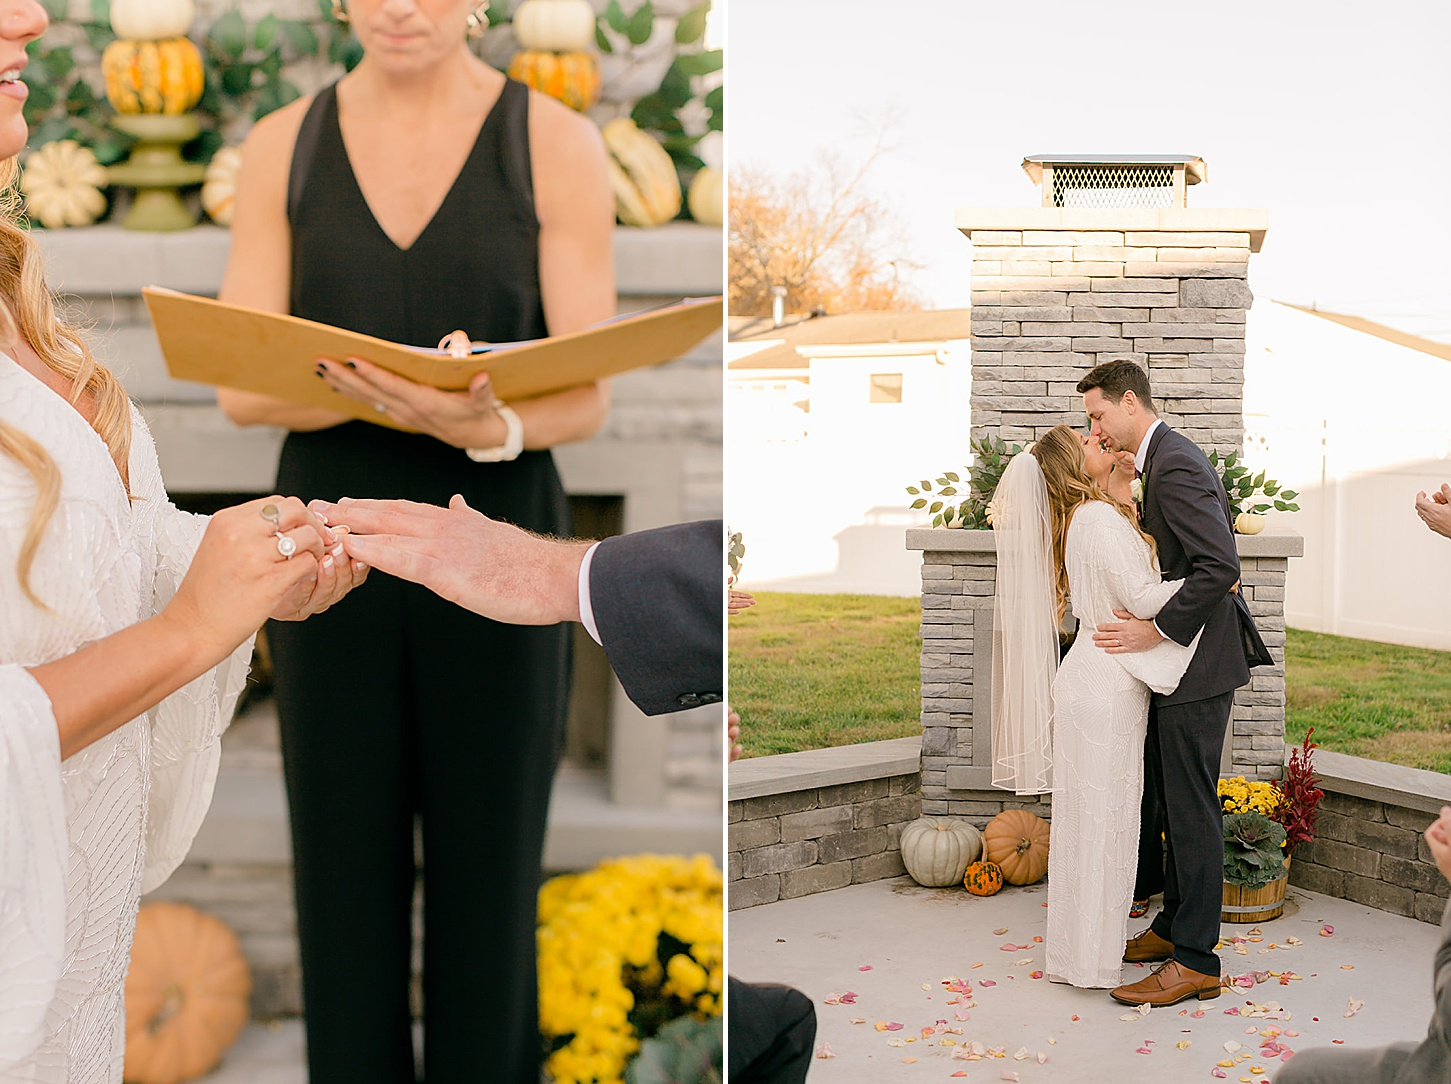 Cape May Intimate Wedding Photography by Magdalena Studios 0007